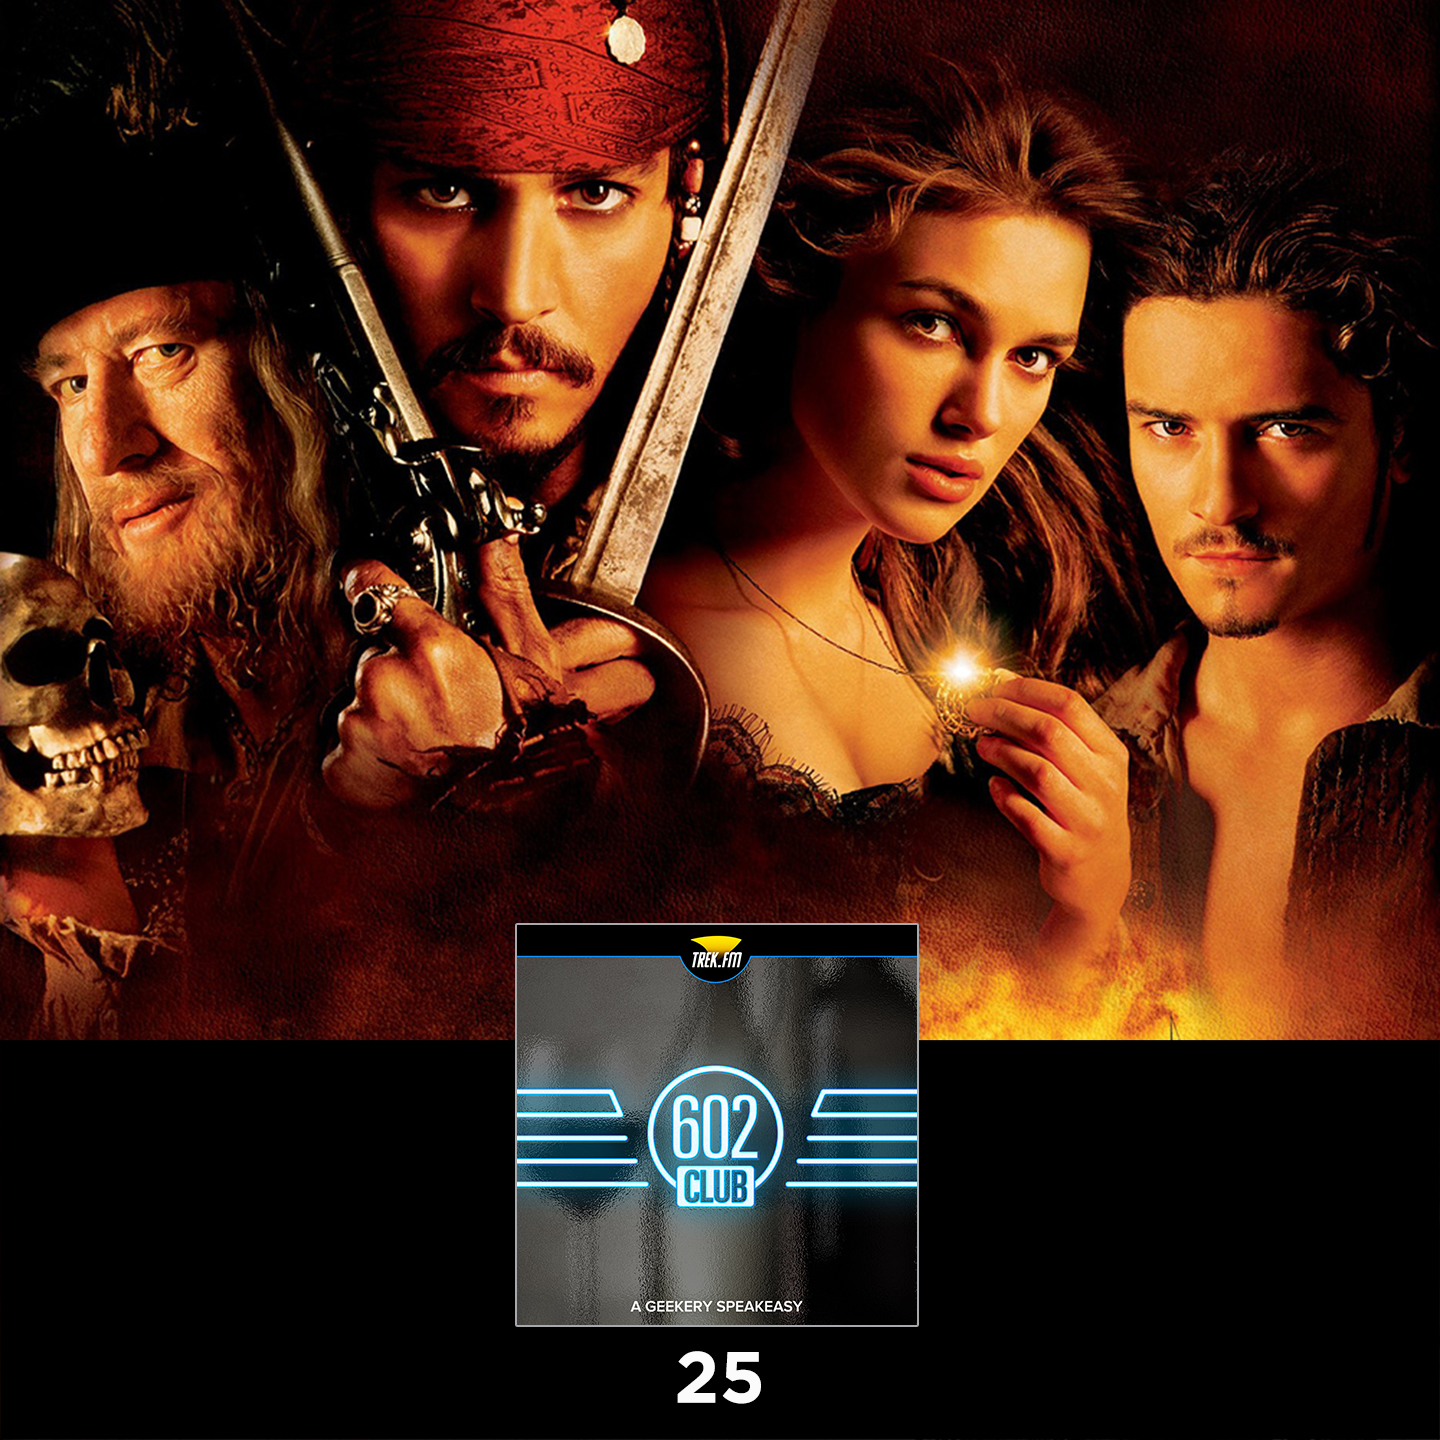 25: Paradise Lost for Pirates